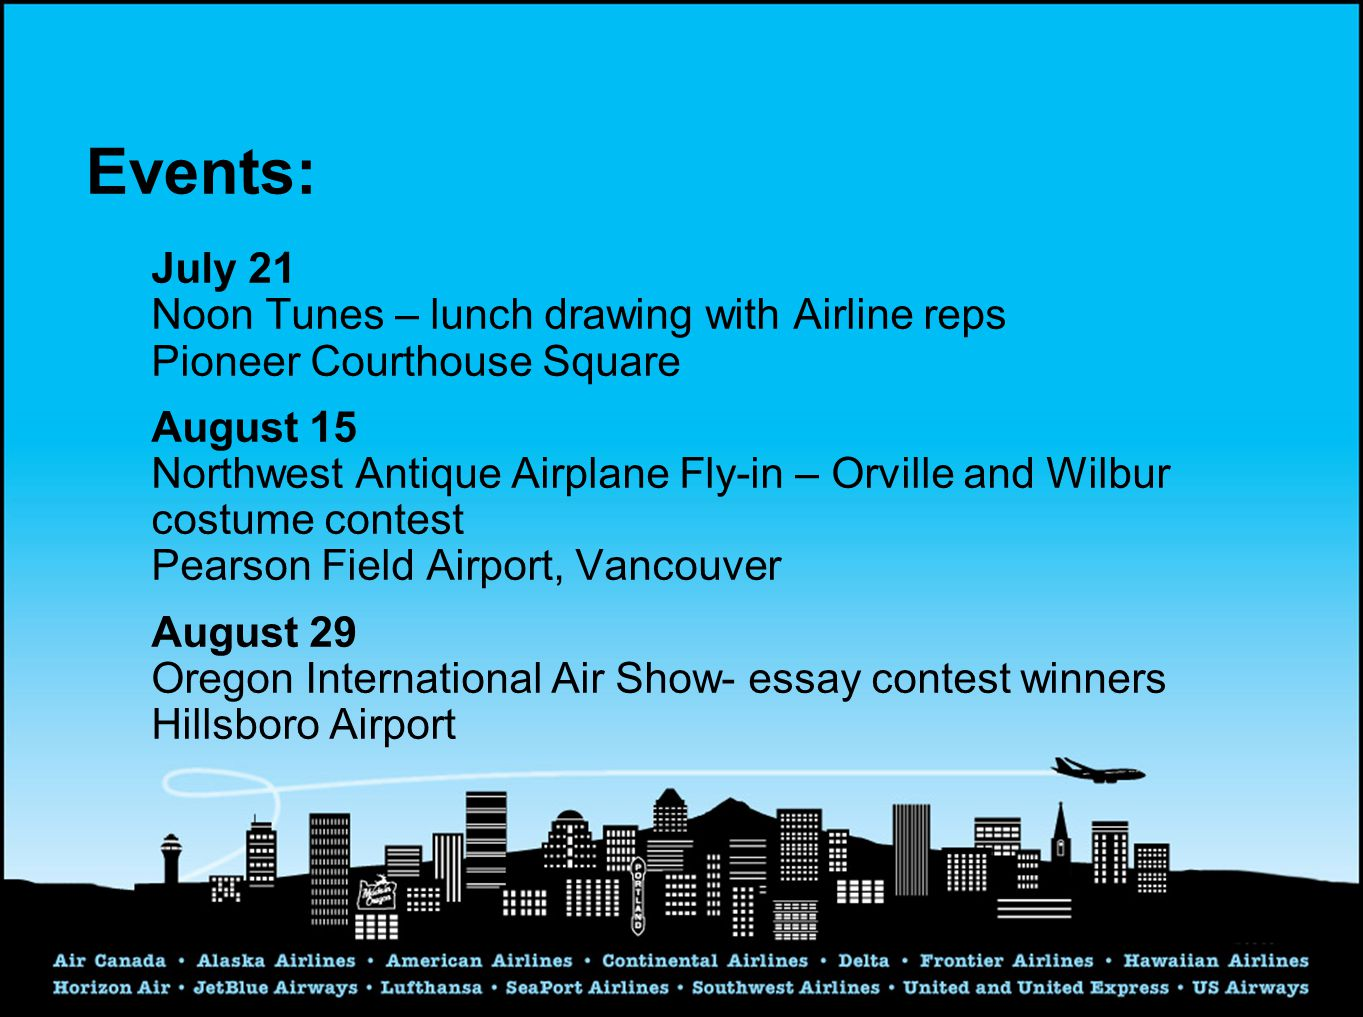 Events: July 21 Noon Tunes – lunch drawing with Airline reps Pioneer Courthouse Square August 15 Northwest Antique Airplane Fly-in – Orville and Wilbur costume contest Pearson Field Airport, Vancouver August 29 Oregon International Air Show- essay contest winners Hillsboro Airport